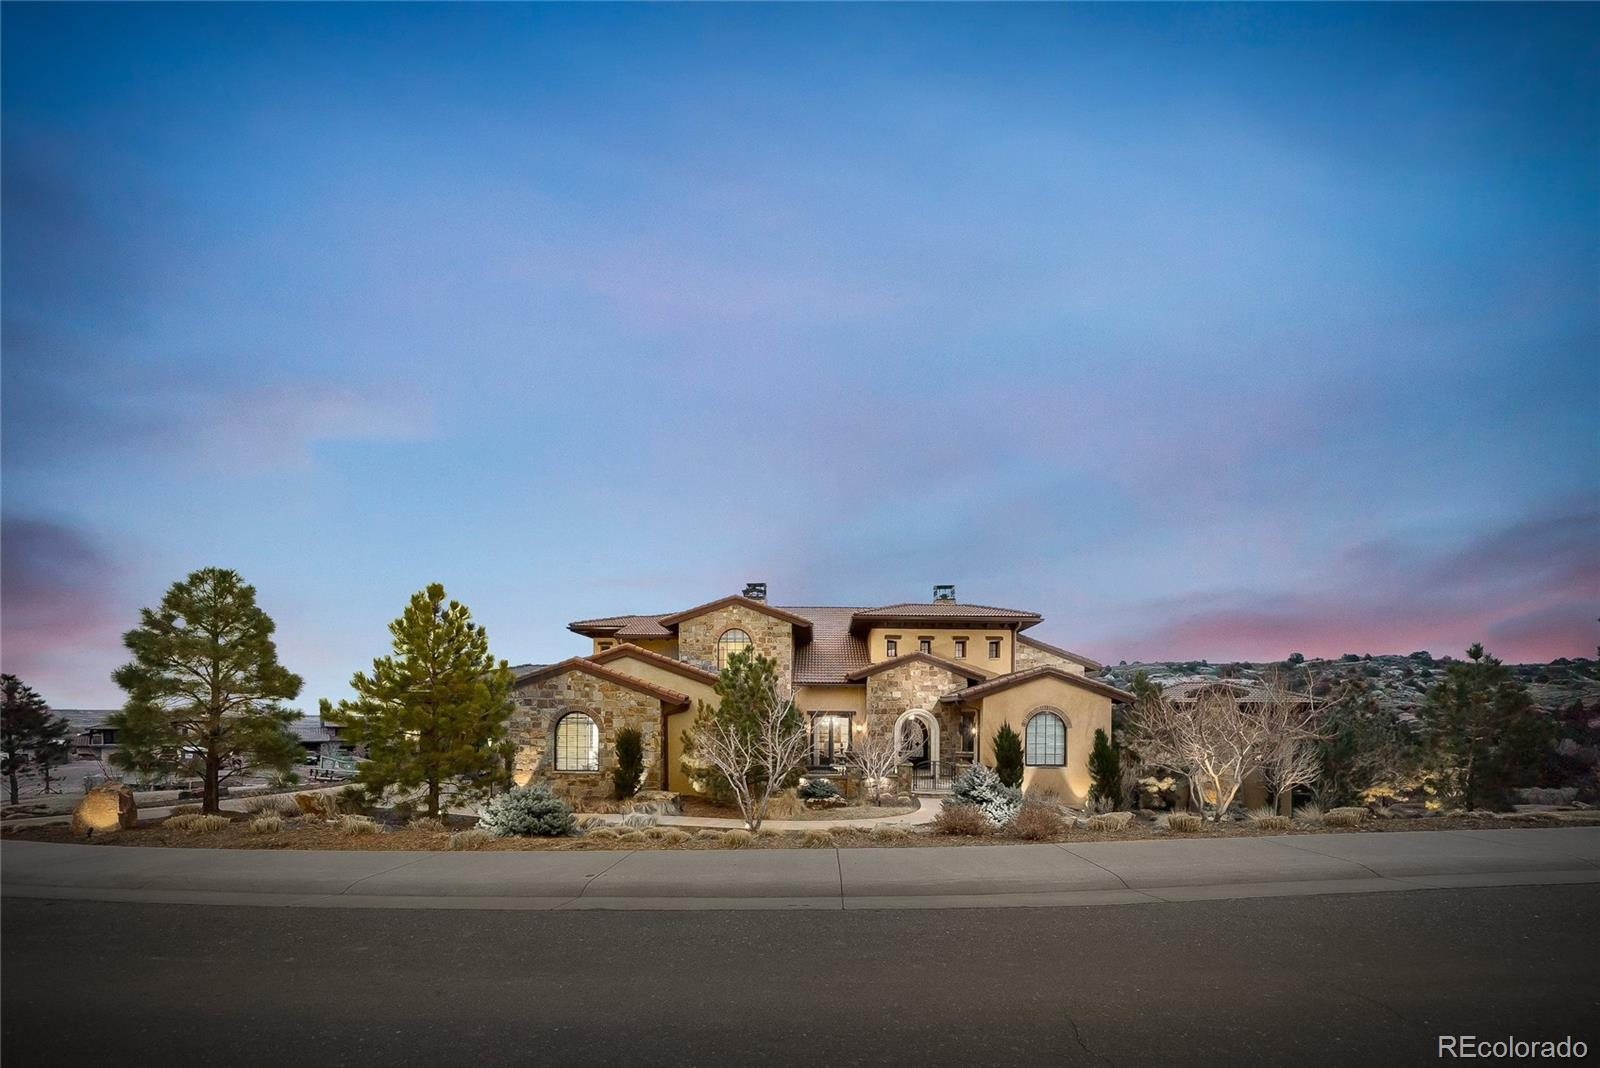 "Don't miss this Estate Tuscan Villa at Ravenna with unforgettable views of stunning red-rock outcroppings nestled in a cul-de-sac surrounded by awe-inspiring views in every direction. Located on one of Ravenna's largest Estate homesites, this super custom home has nearly 9,000 square feet of pure luxury. Upon a grand entry the main floor features gourmet kitchen with wolf/subzero appliances, wet bar, two story great room, private office overlooking the courtyard, a Jr. Suite with private patio, and master bedroom suite with private patio and spa. The remodeled lower walk out has everything needed to entertain year-round with custom ""pub style"" bar, game room, theater style rec room, home gym, steam shower, and private Jr. Suite. The upper level has an additional 3 private Jr. Suites with stunning views in all directions. Outdoor living spaces offer year around covered and uncovered dining and entertaining for all to enjoy. Do not miss out on this rare opportunity to own one of Ravenna's most spectacular Estate properties."